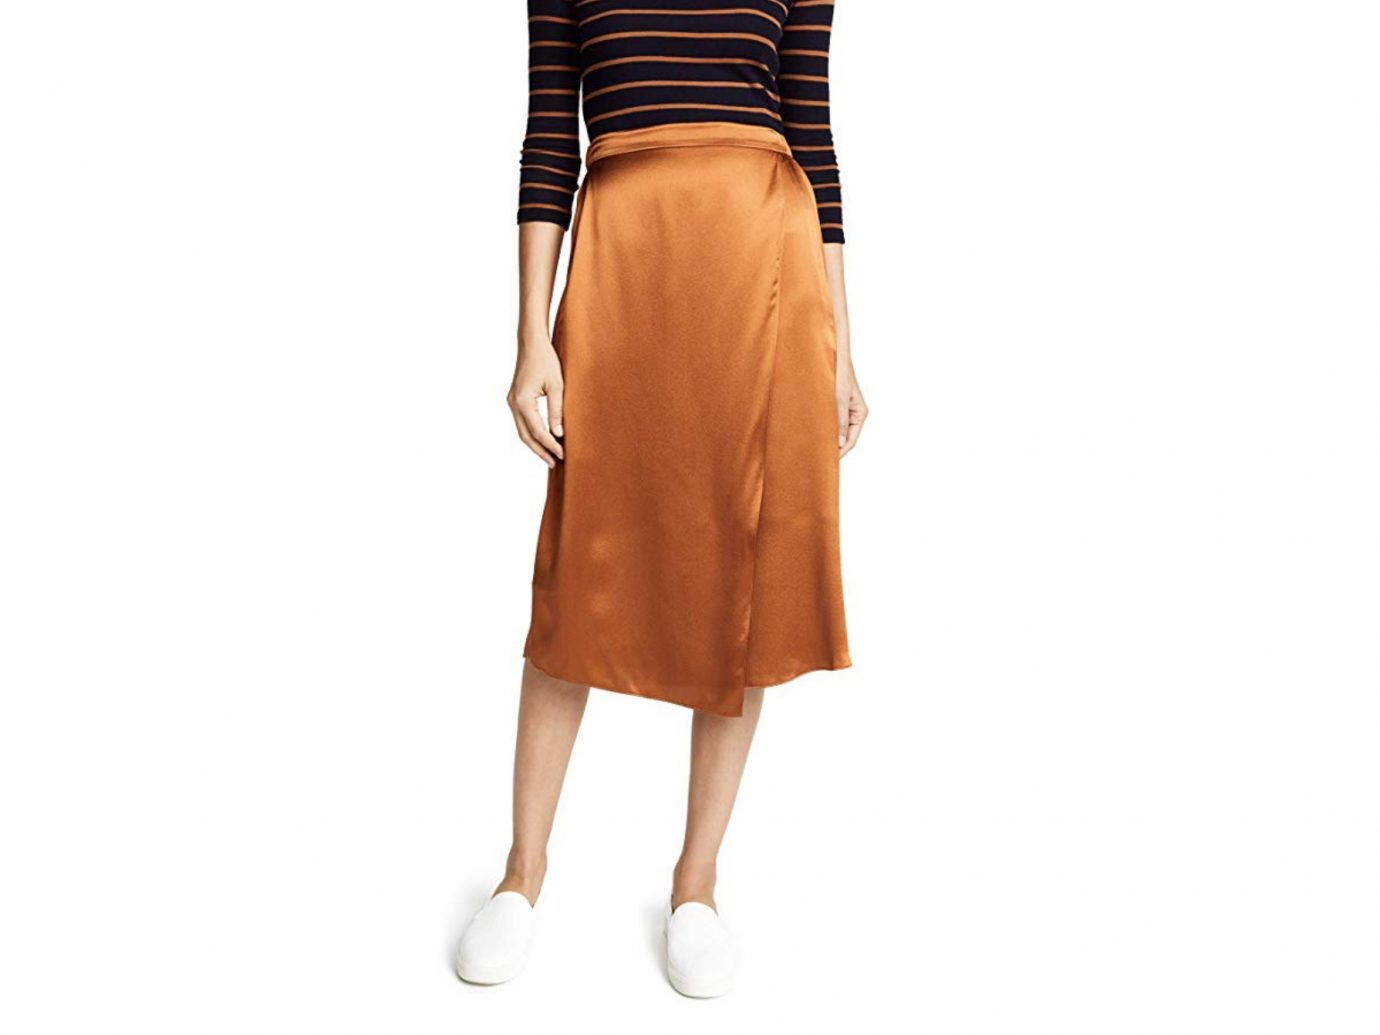 Vince Drape silk midi skirt in rust copper color